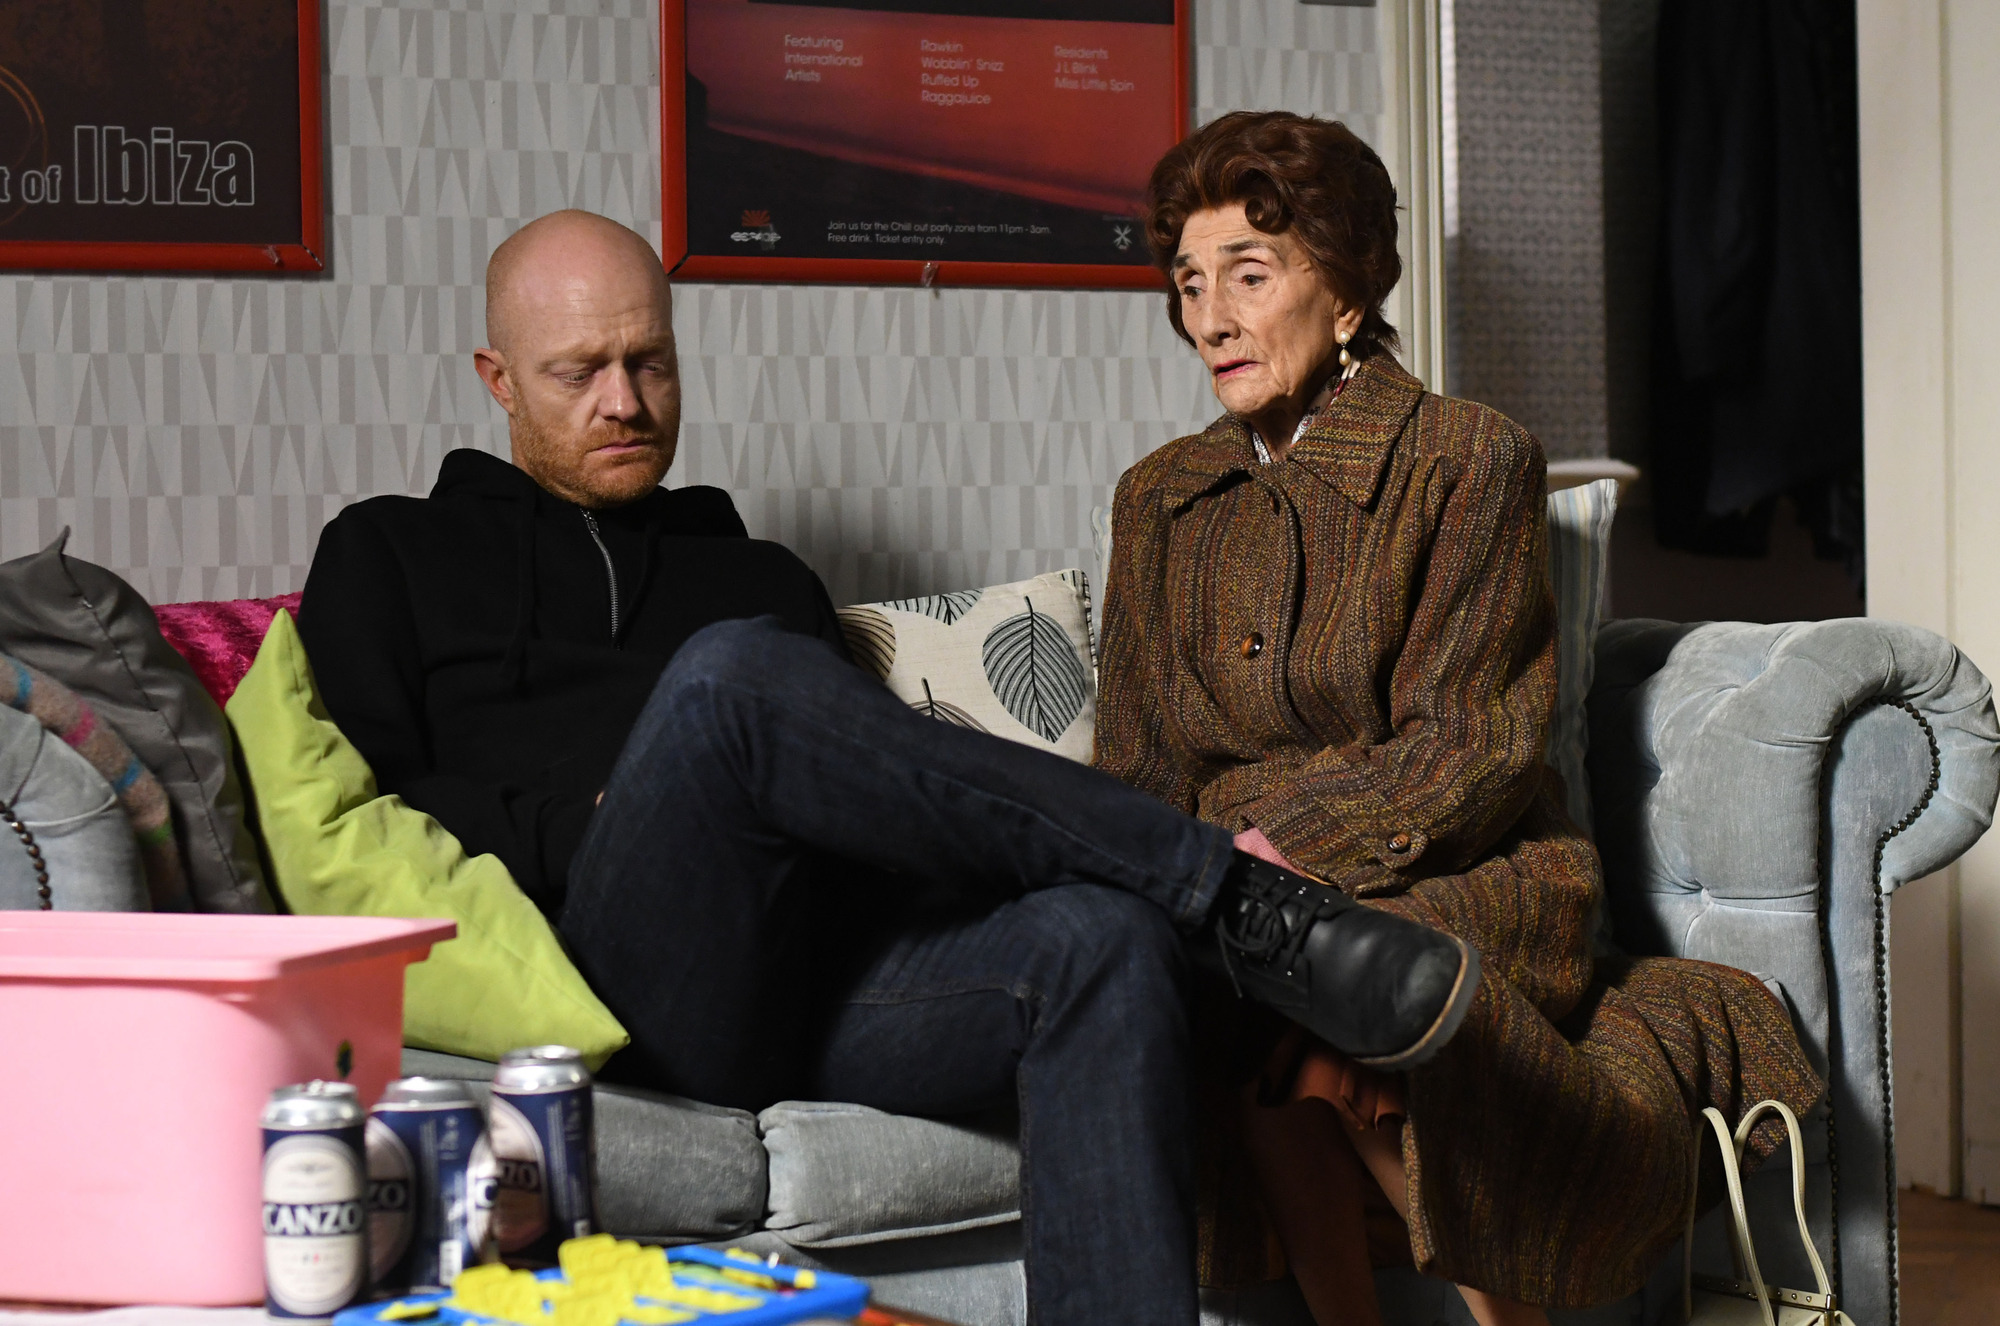 Dot consoles Max over Abi in EastEnders